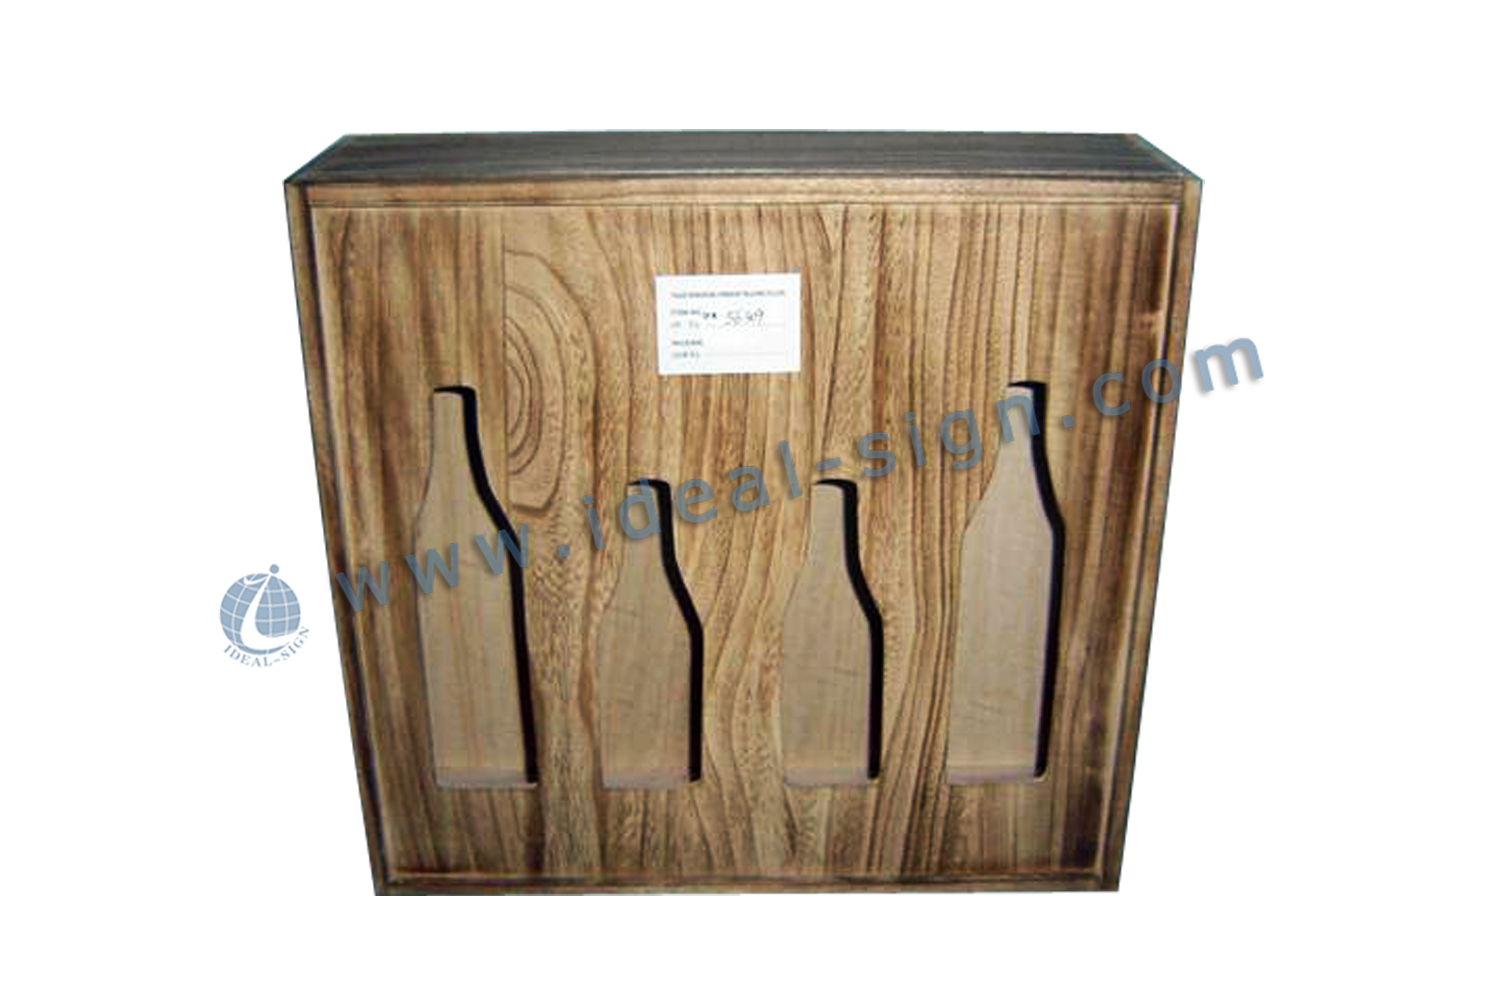 Hollowed-out Wooden Wine Box